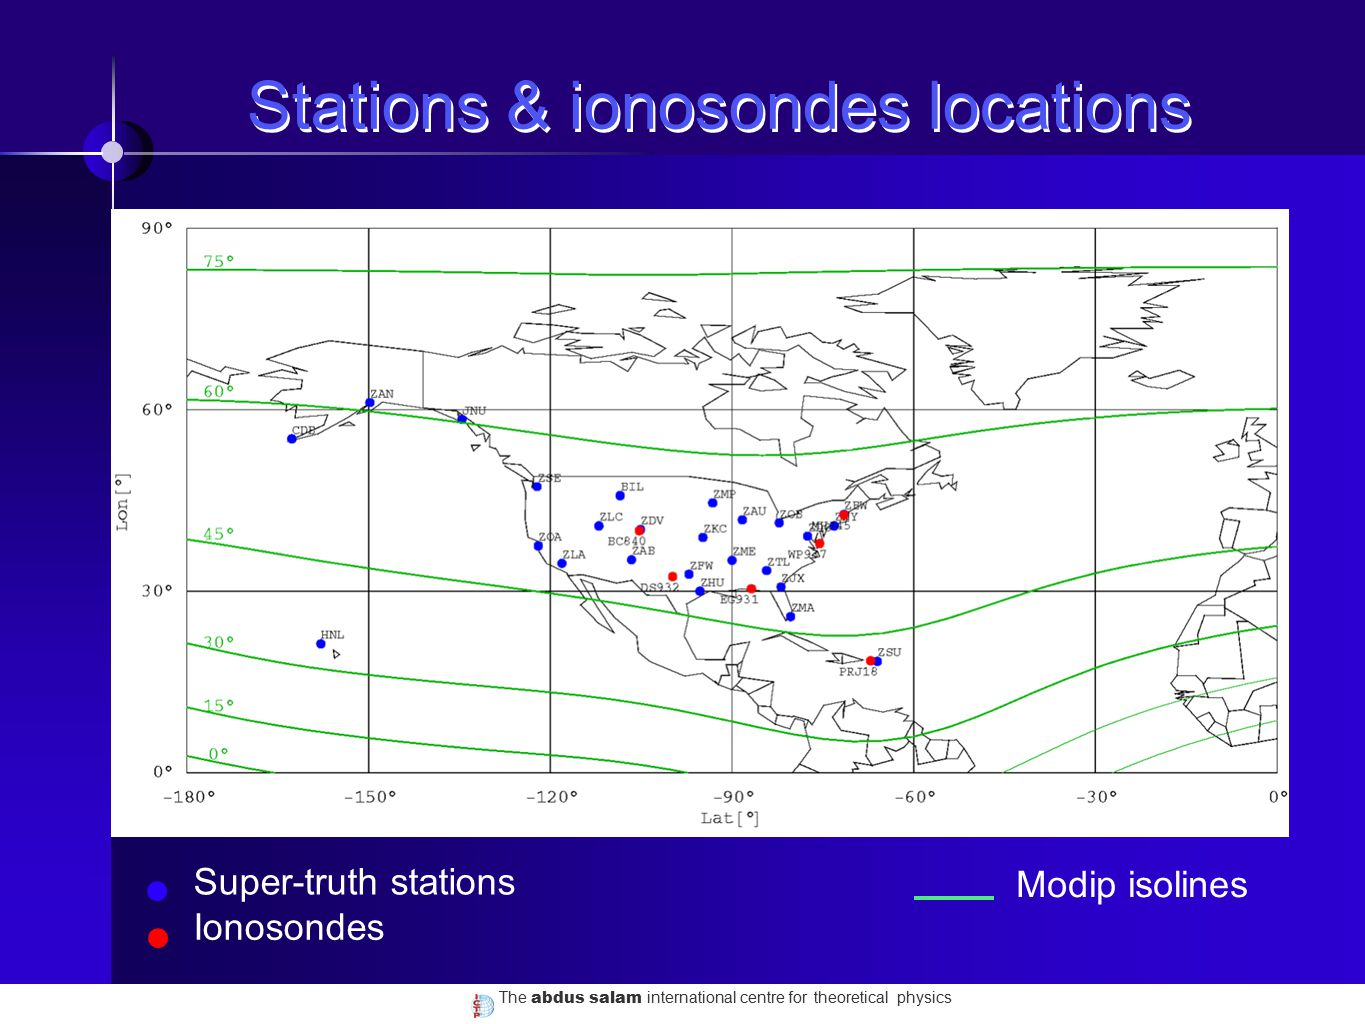 The abdus salam international centre for theoretical physics Stations & ionosondes locations Super-truth stations Ionosondes Modip isolines